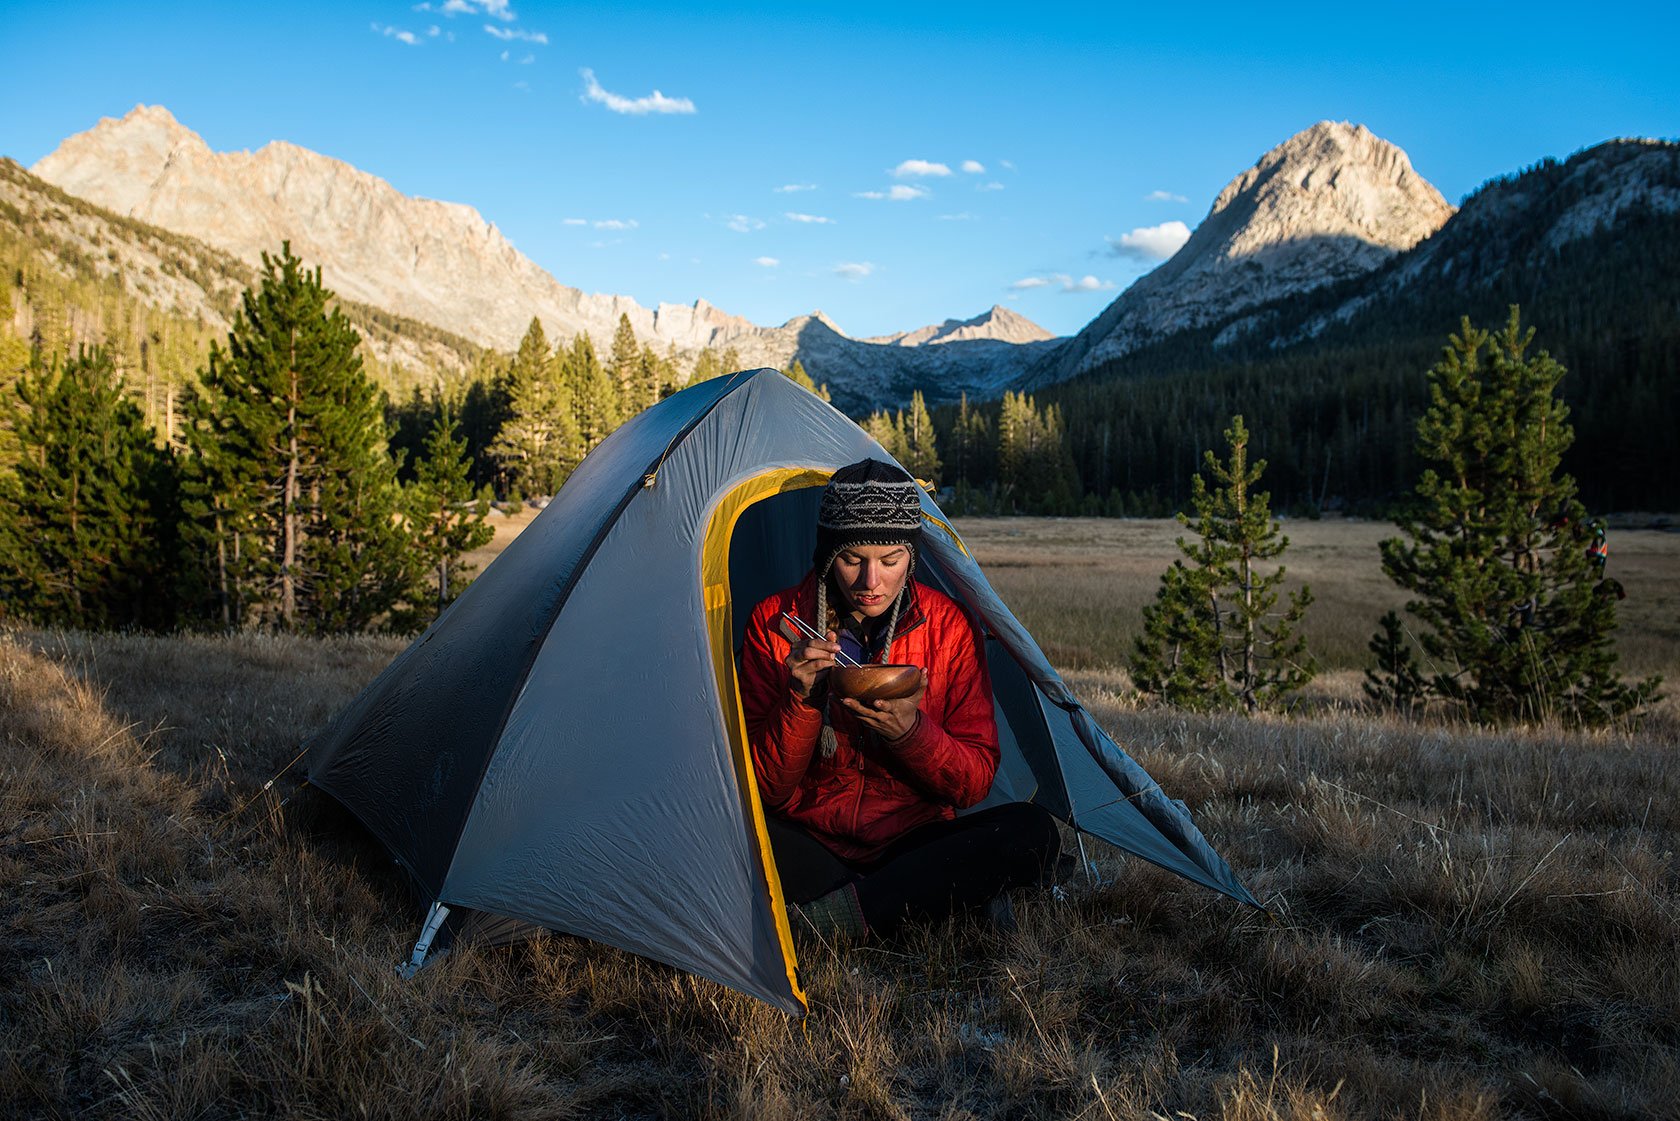 austin-trigg-patagonia-hiking-john-muir-trail-wilderness-california-adventure-outside-camp-sierra-nevada-lifestyle-tent-sunset-meadow-evolution-valley.jpg